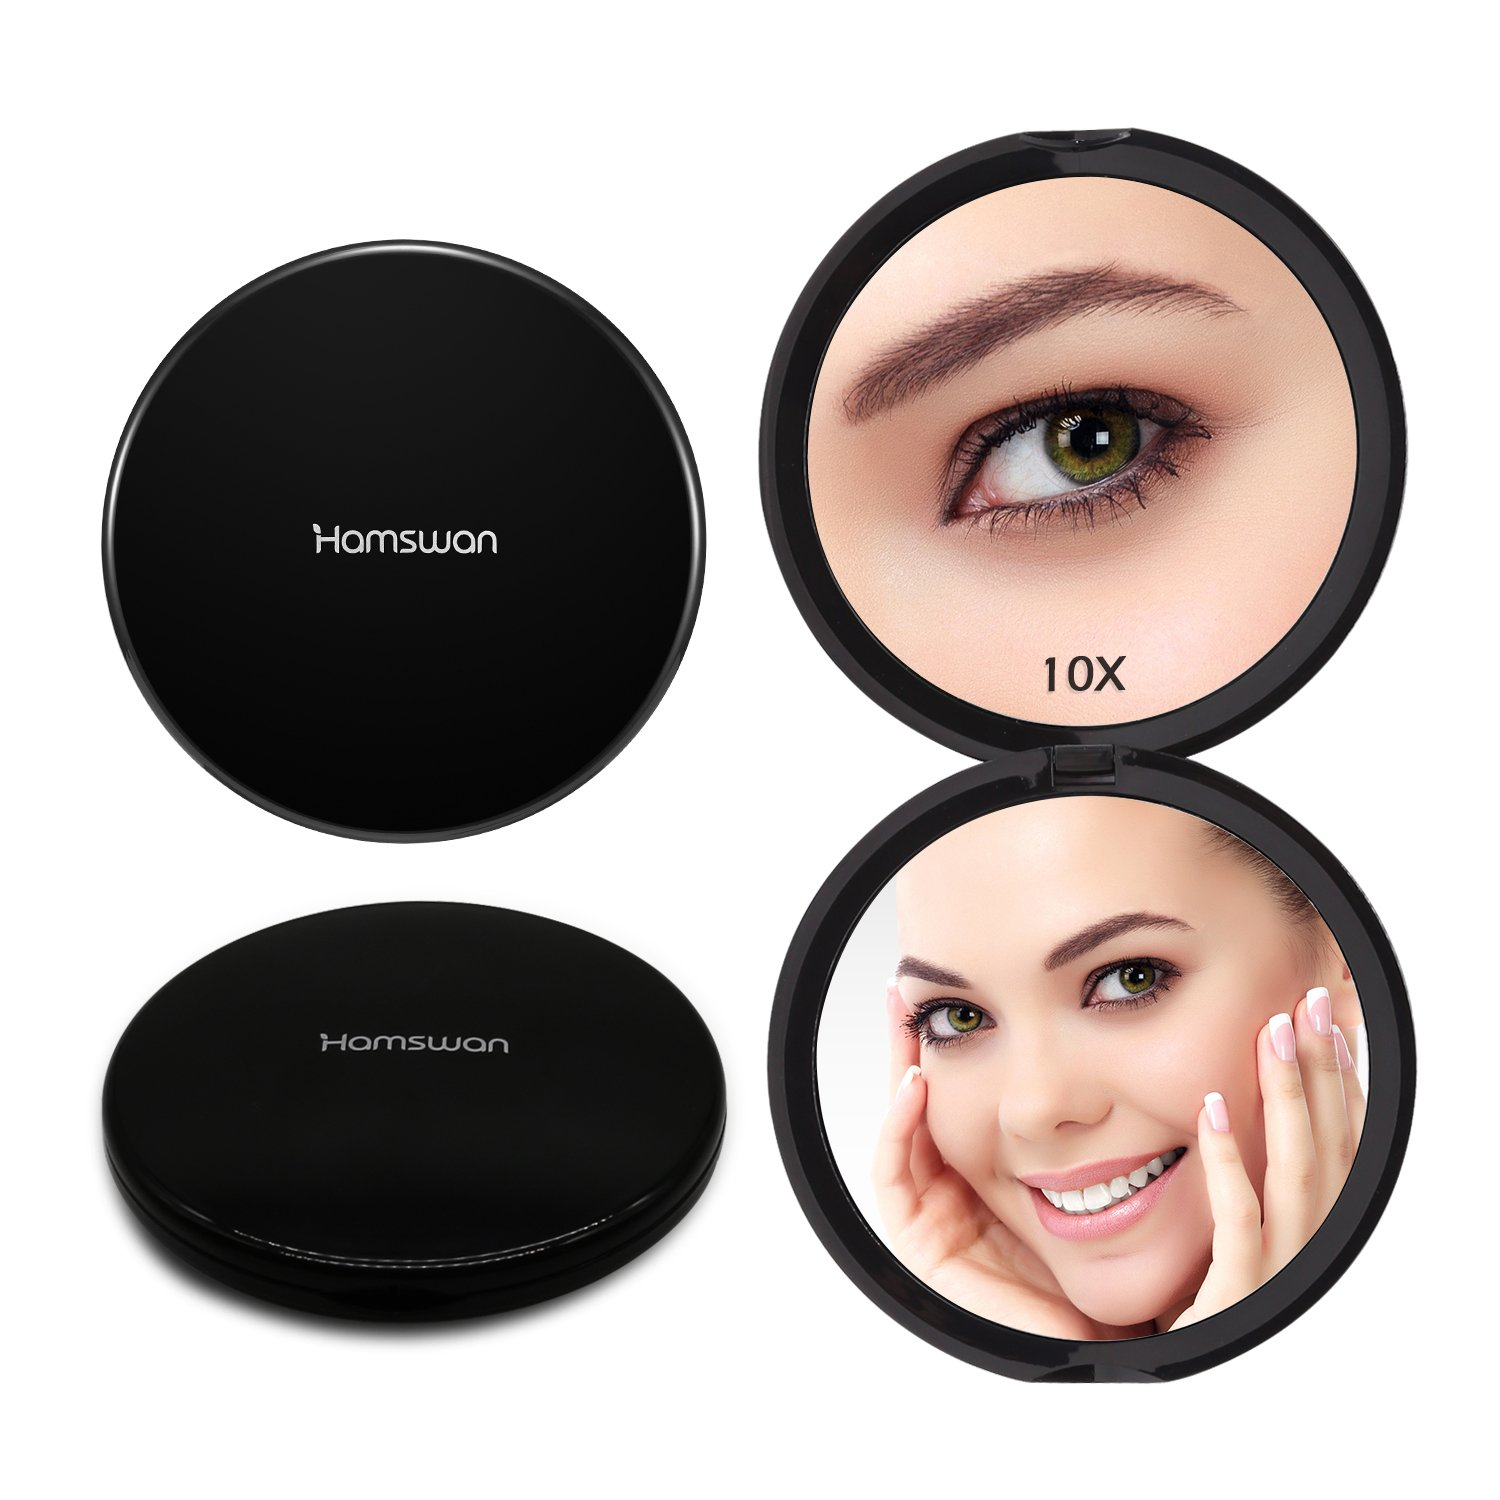 HAMSWAN Compact Makeup Mirror, 10X Magnifying Mirror, Small Round Mirror, Portable Pocket Mirror with 1X 10X Magnifying, Hand Held Cosmetic Mirror (Black) RM189-D